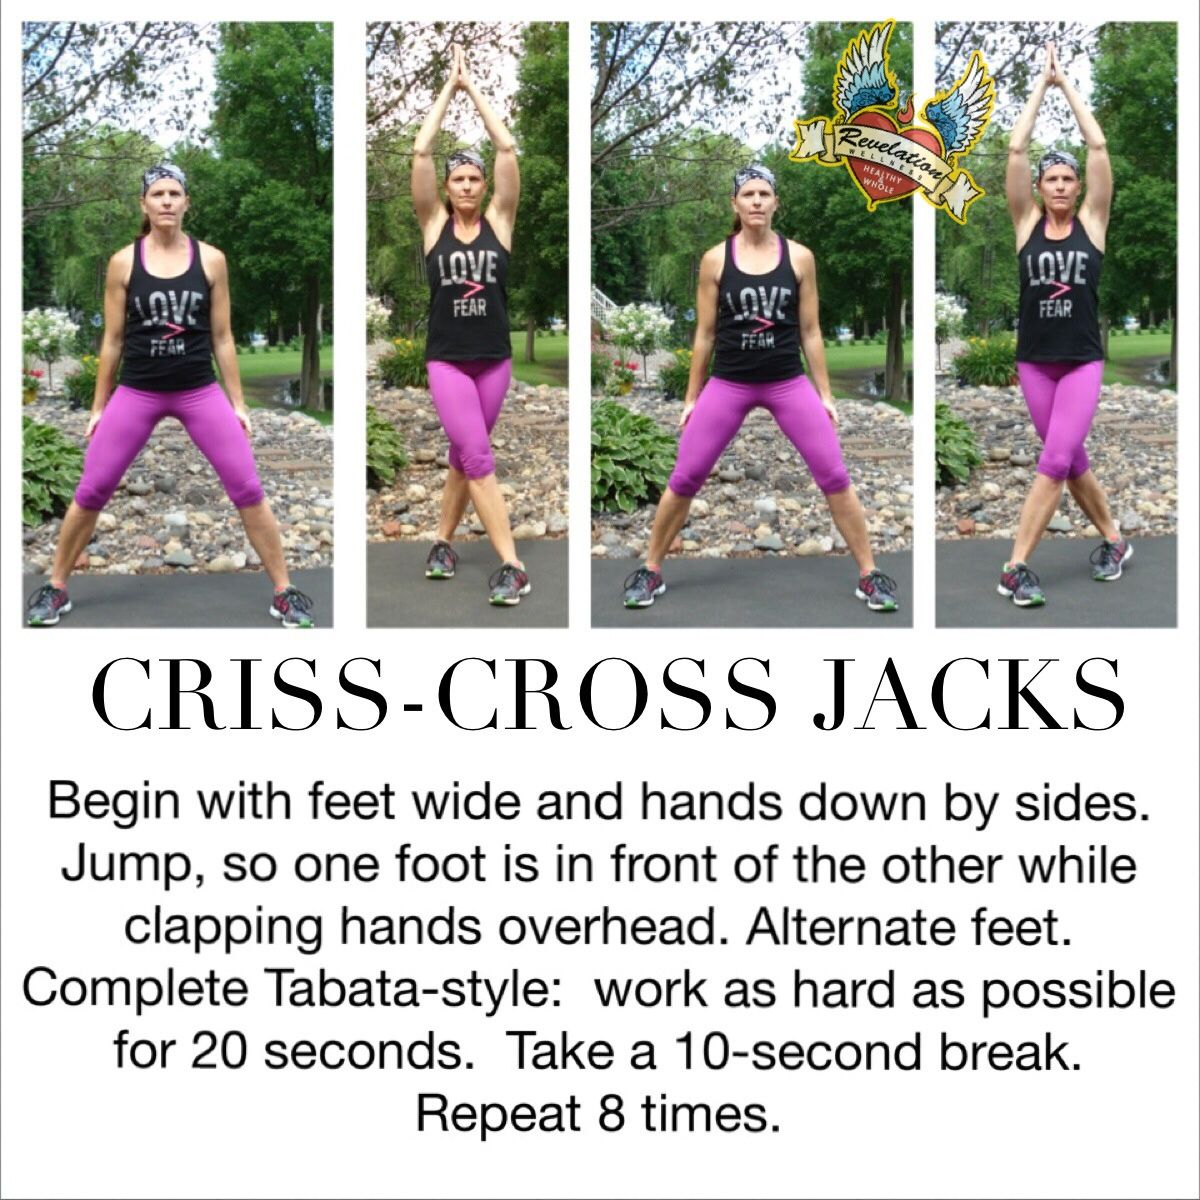 Criss-Cross Jacks! Give it a try! Great workout for the